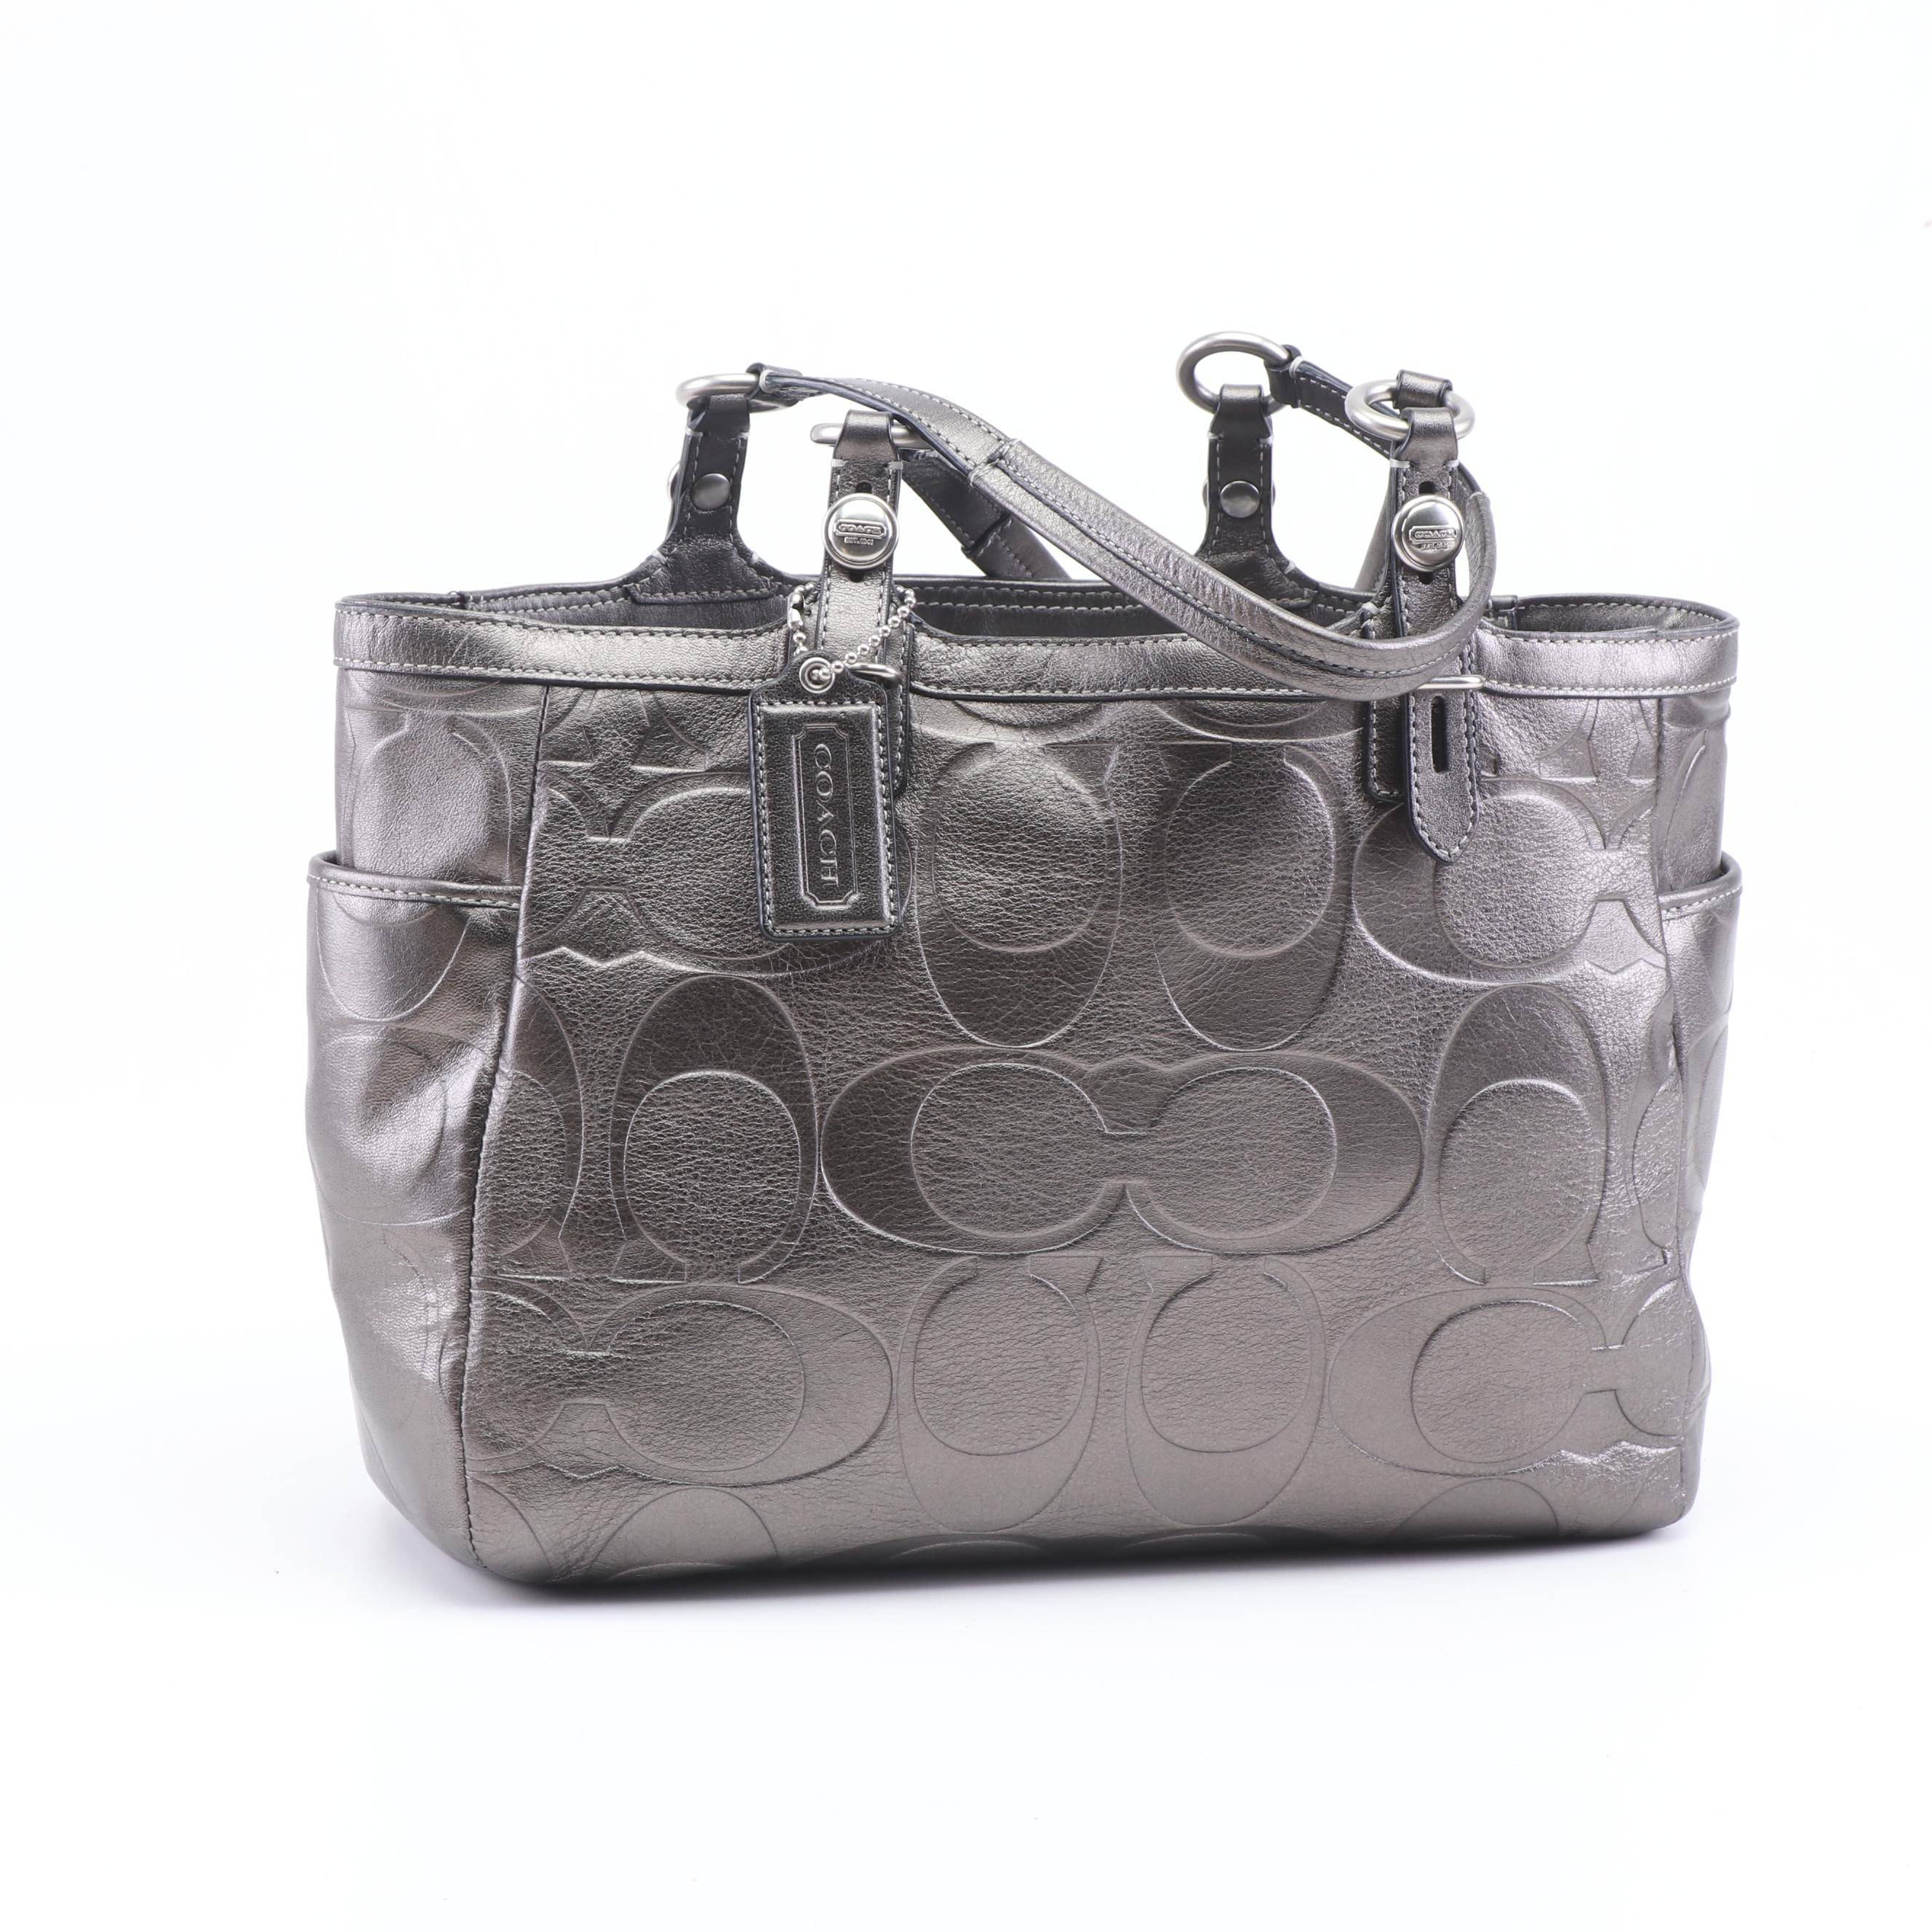 Coach Signature Gunmetal Metallic Leather Tote Bag